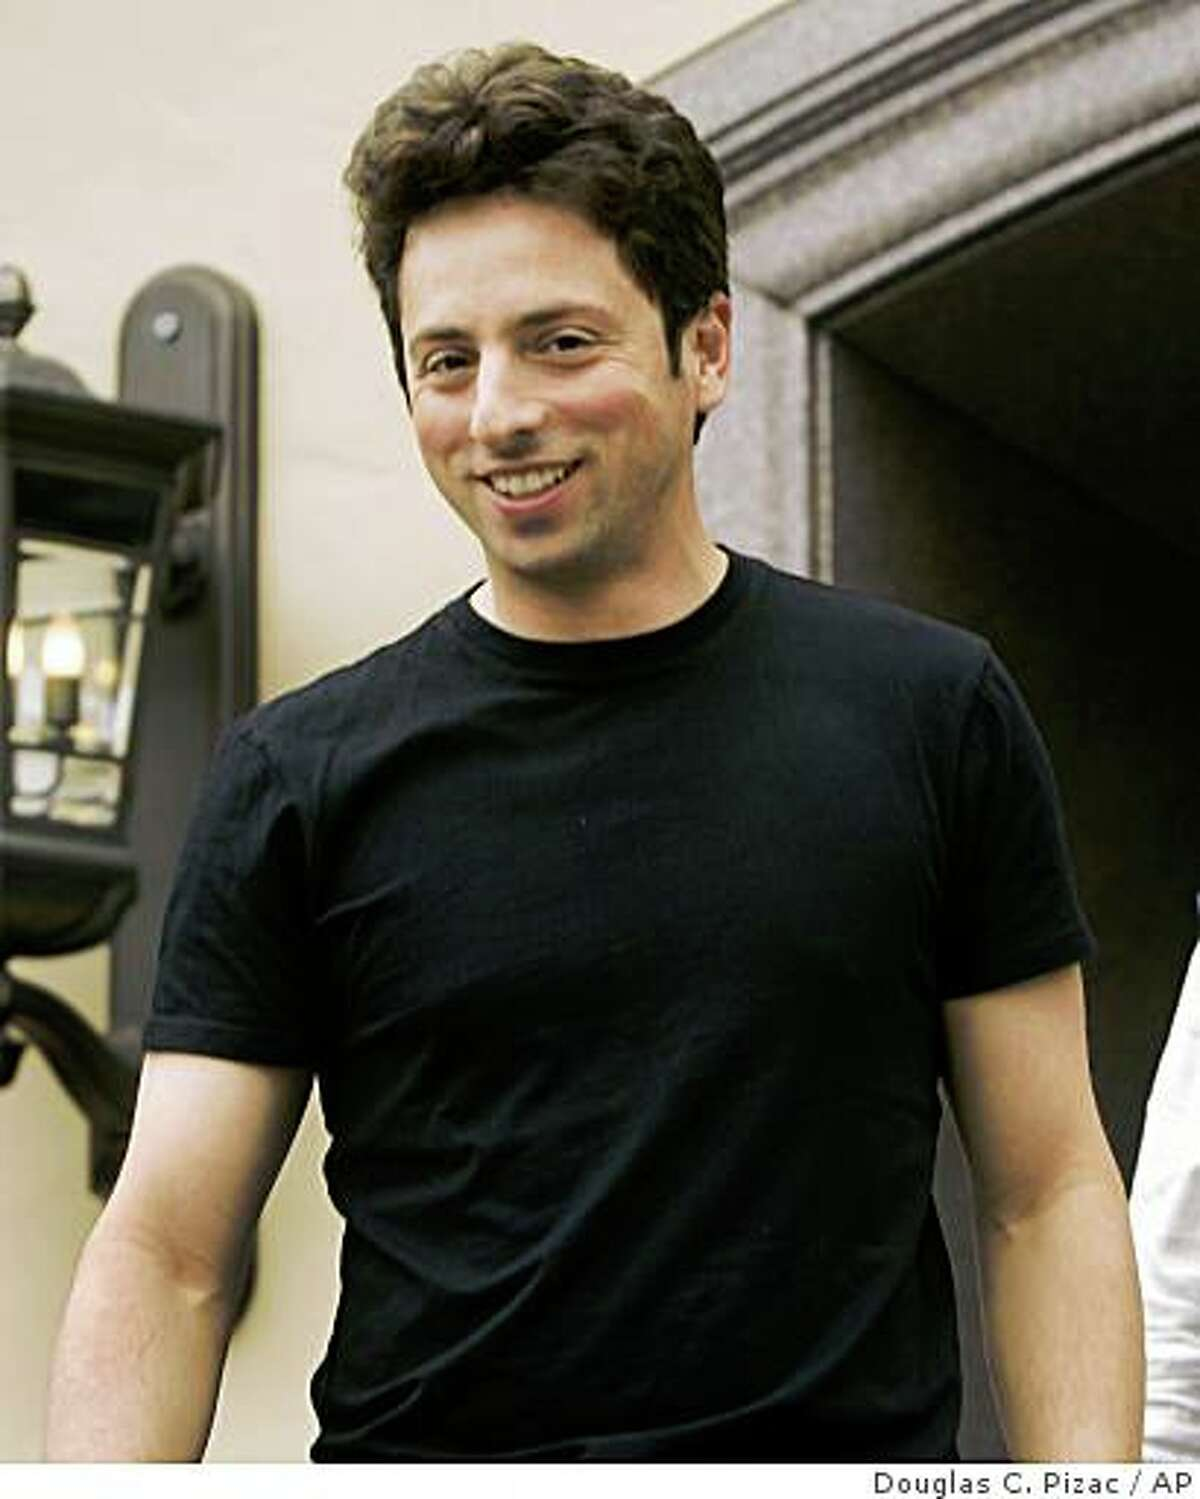 ?It did sound kind of crazy,? said Sergey Brin, Google?s co-founder, at a press conference. ?The team decided to give them the benefit of the doubt.? Google co-founder Sergey Brin is the second-richest person in the Bay Area and No. 32 nationally, according to Forbes.